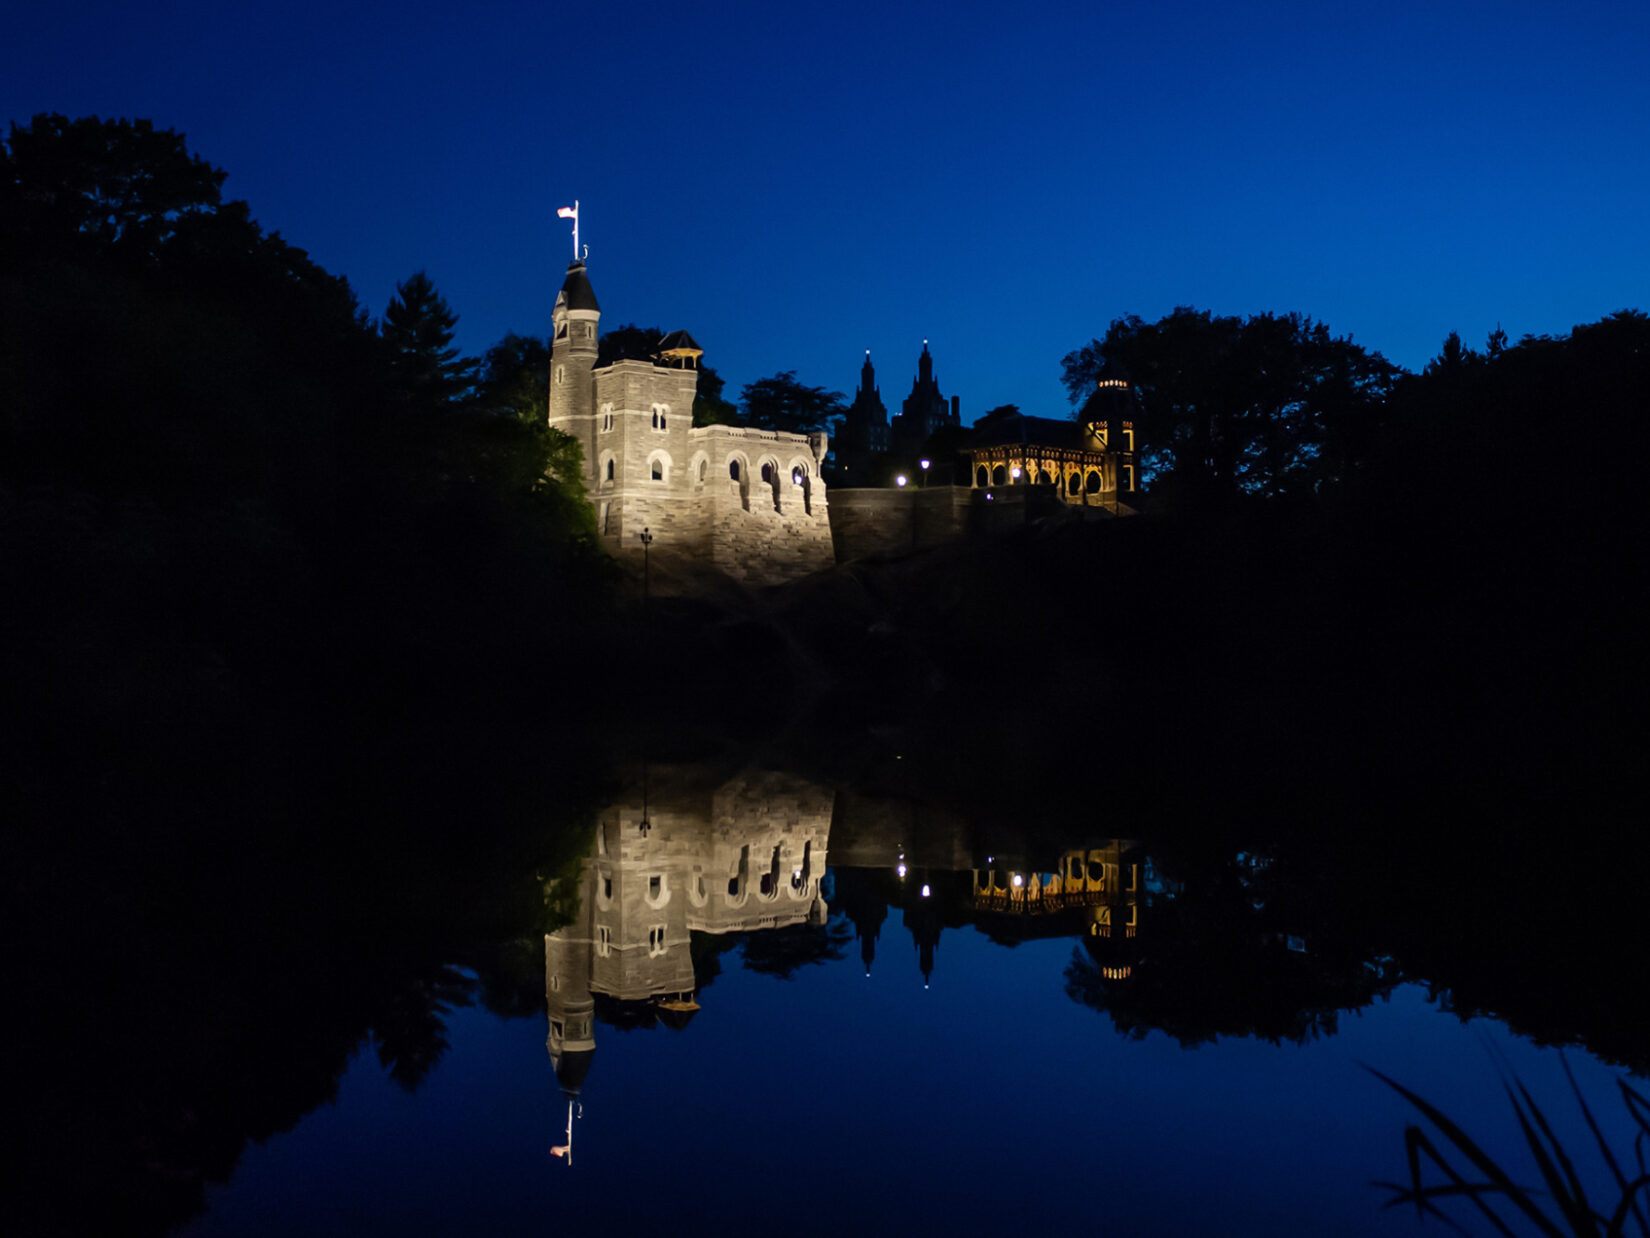 The Castle seen from across Turtle Pond, lit dramatically at night